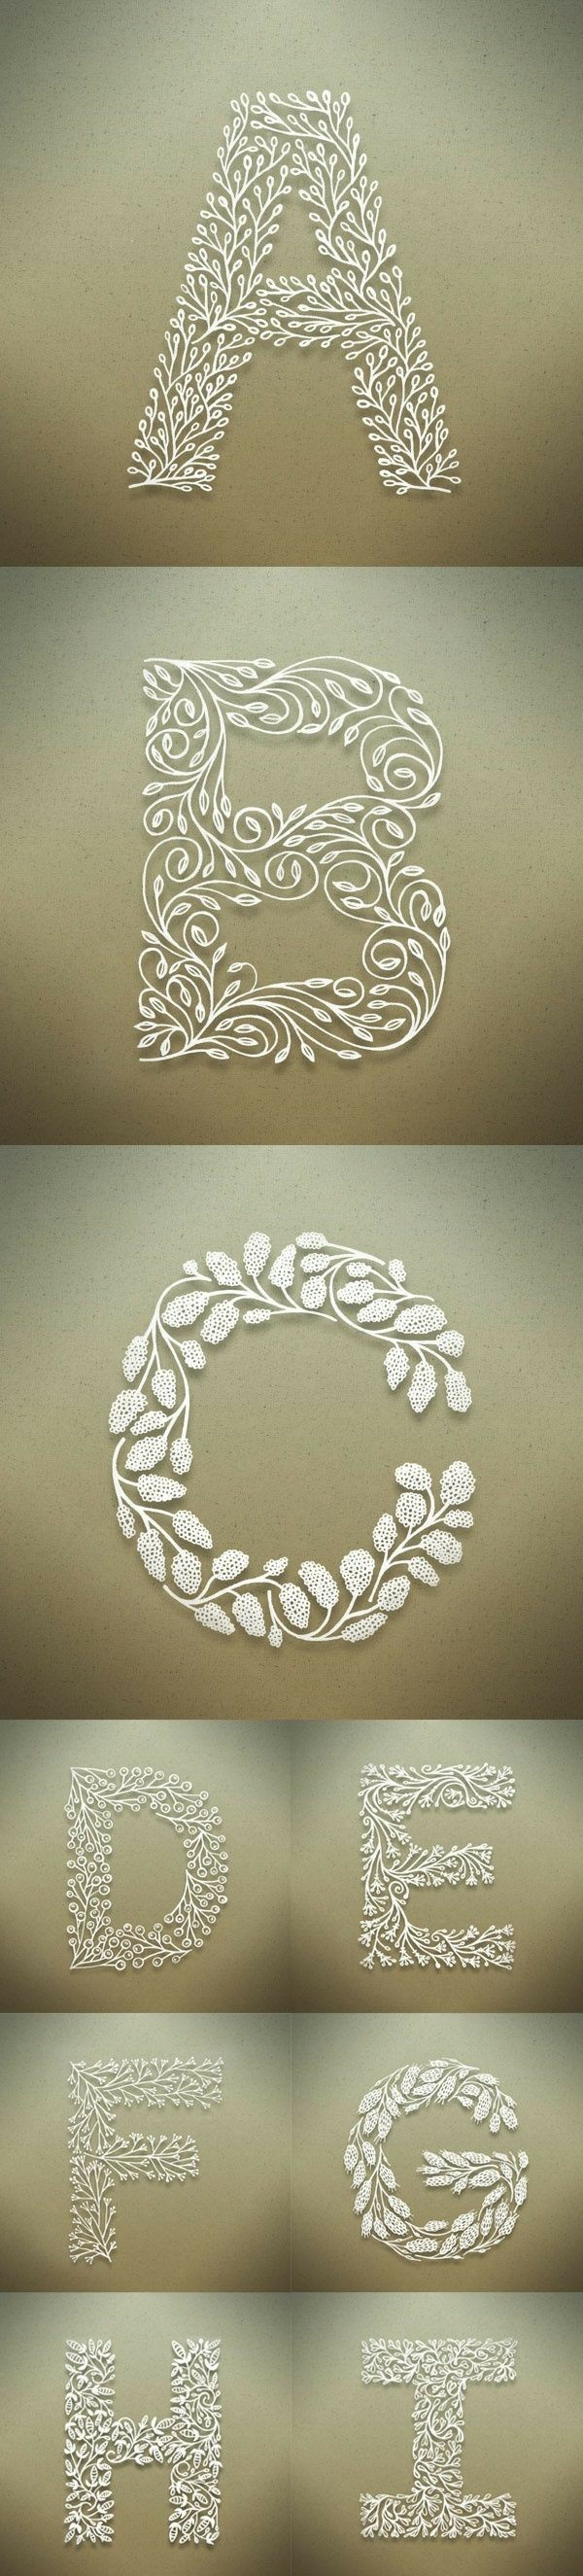 Pin by carla kanabara on quilling pinterest quilling patterns